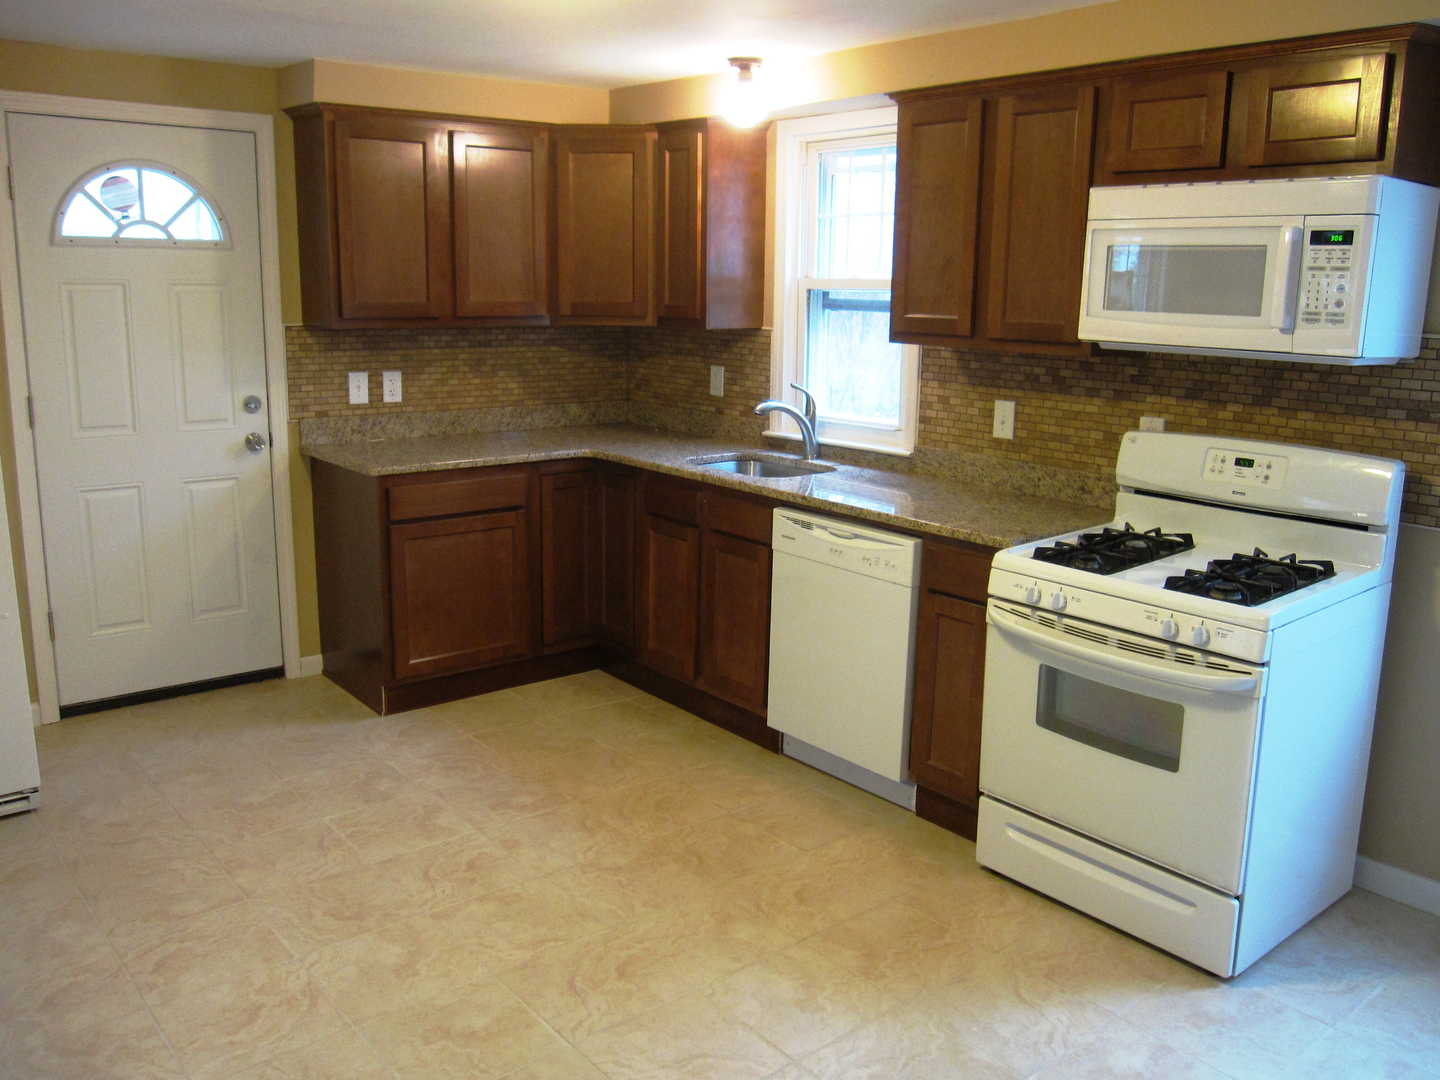 Kitchen Rehab Rehab Gallery Realty Transition Project Gallery